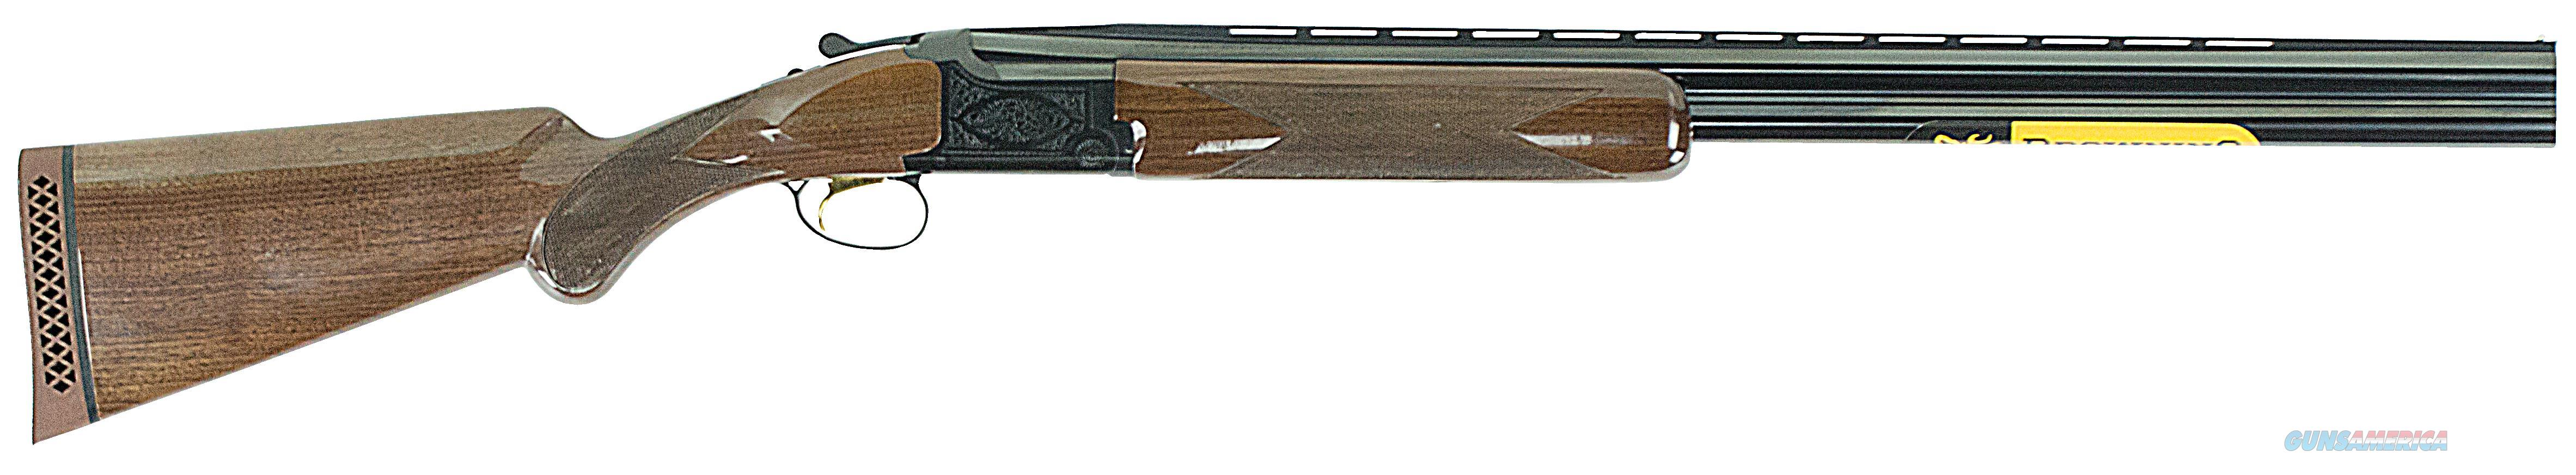 BROWNING CITORI 28GA 2.75 28 LIGHTNING GRD I 013461813  Guns > Shotguns > Browning Shotguns > Over Unders > Citori